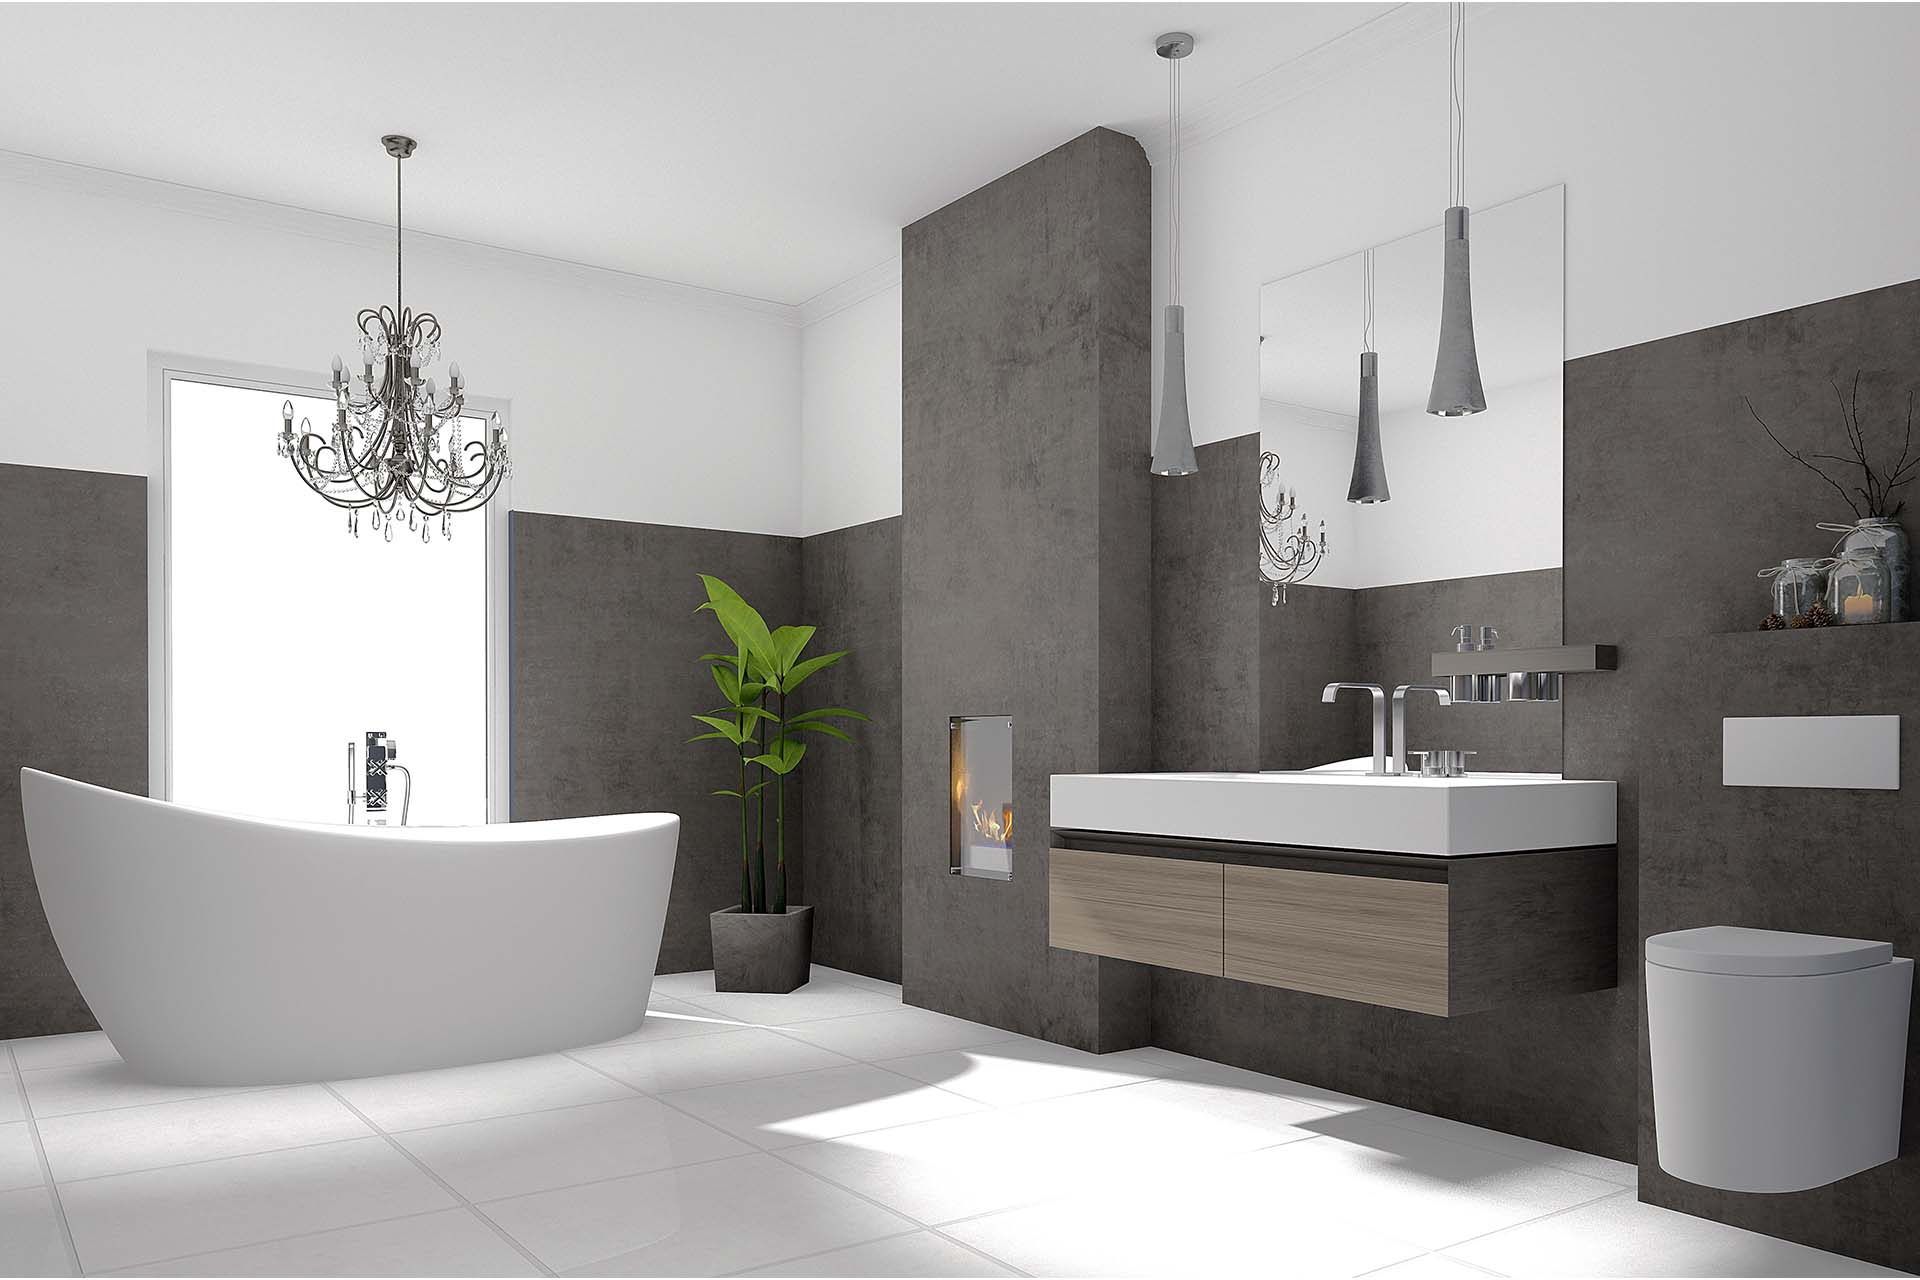 ADHS Bathroom Design and Install Essex London Hertfordshire